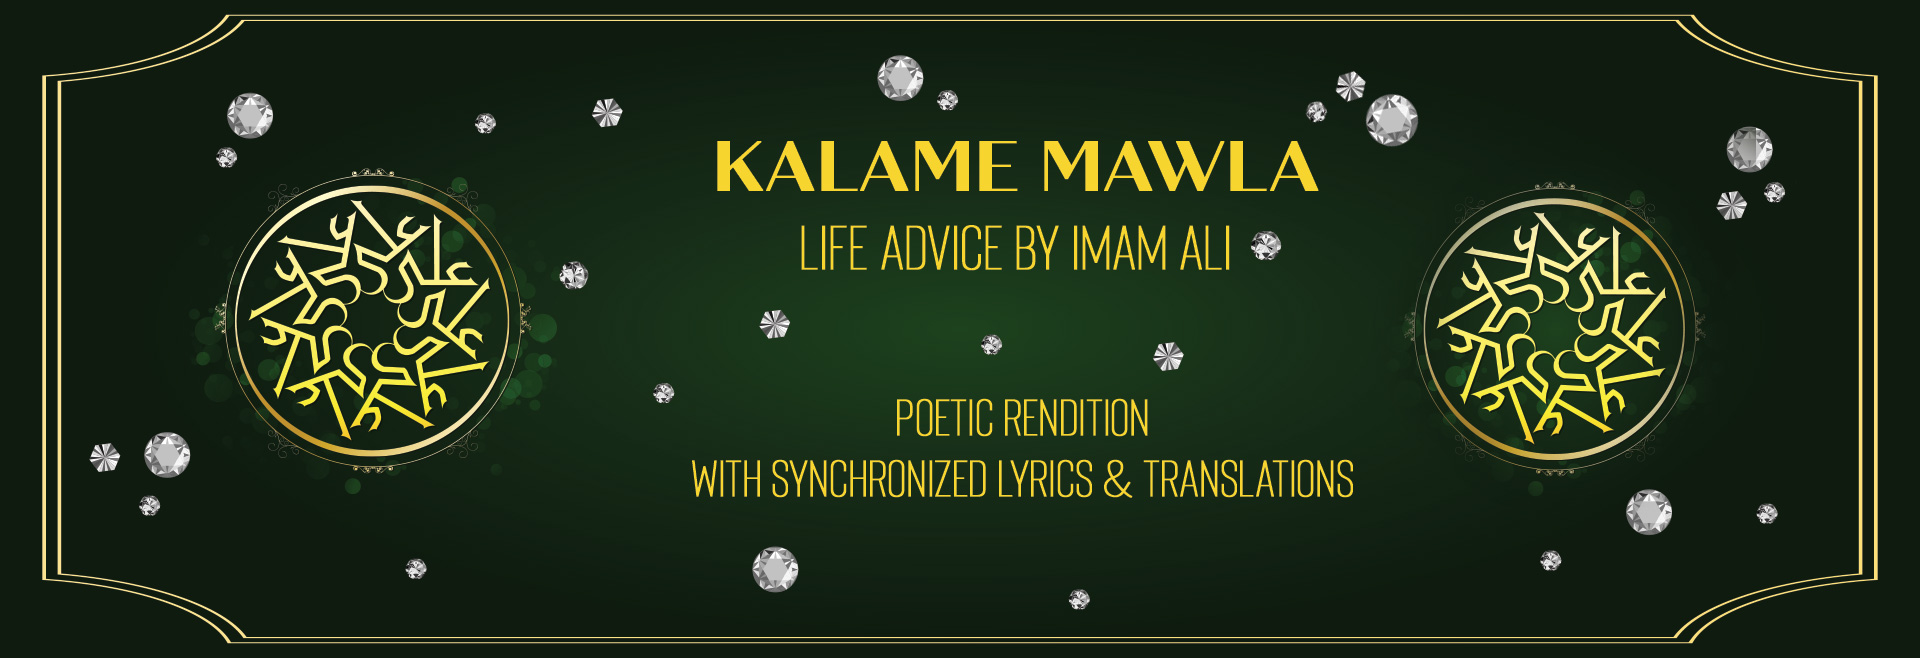 Kalame Mawla – Service Launched